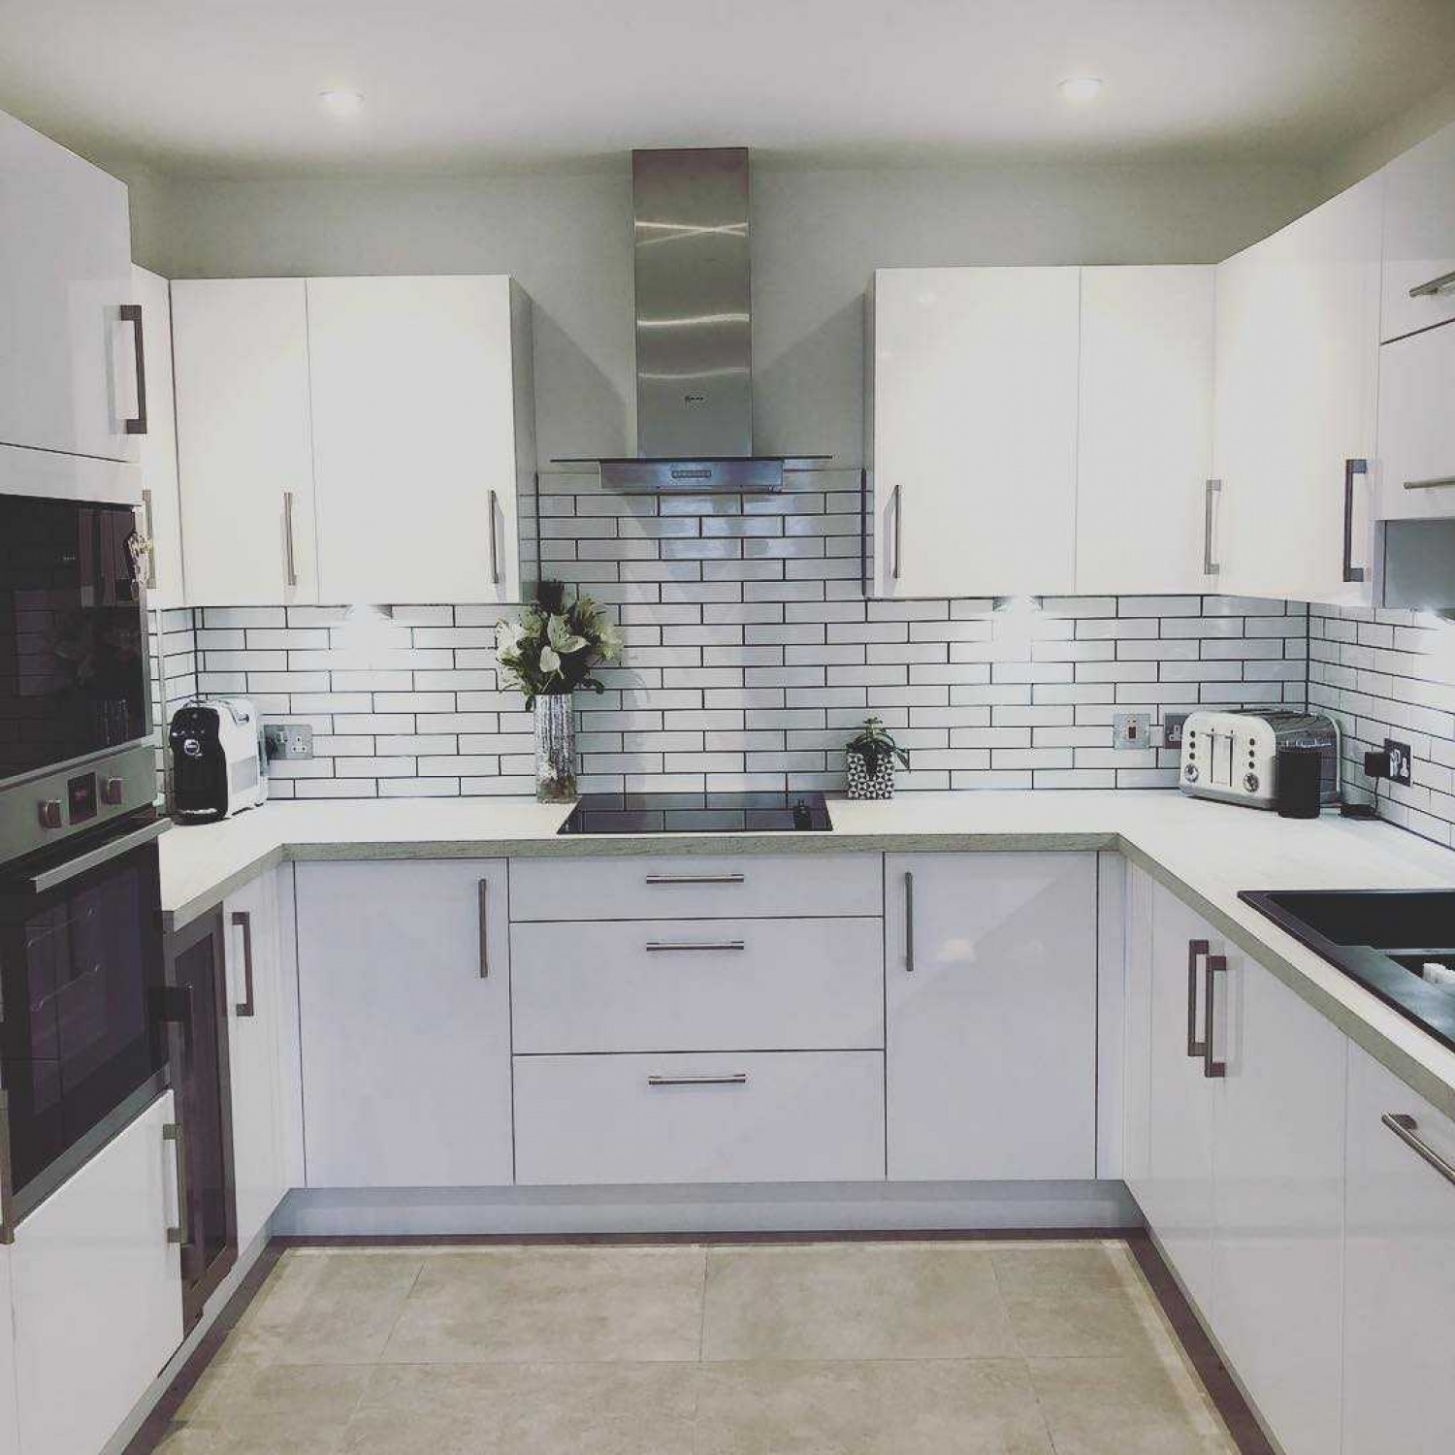 12 Must-have kitchen tile ideas to make you swoon! - kitchen ideas tiles